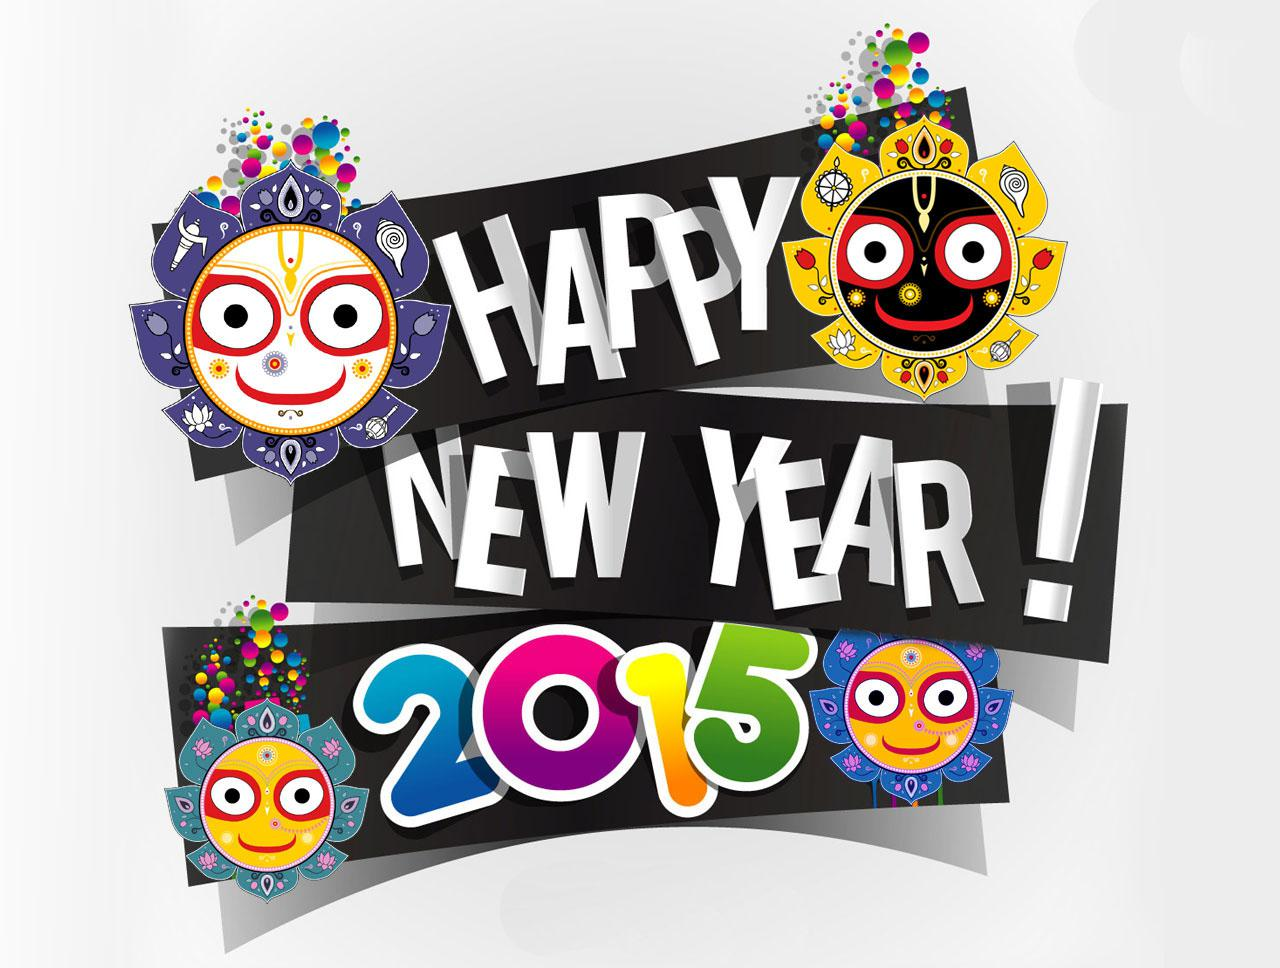 1280x968 New Year Desktop Clipart Free